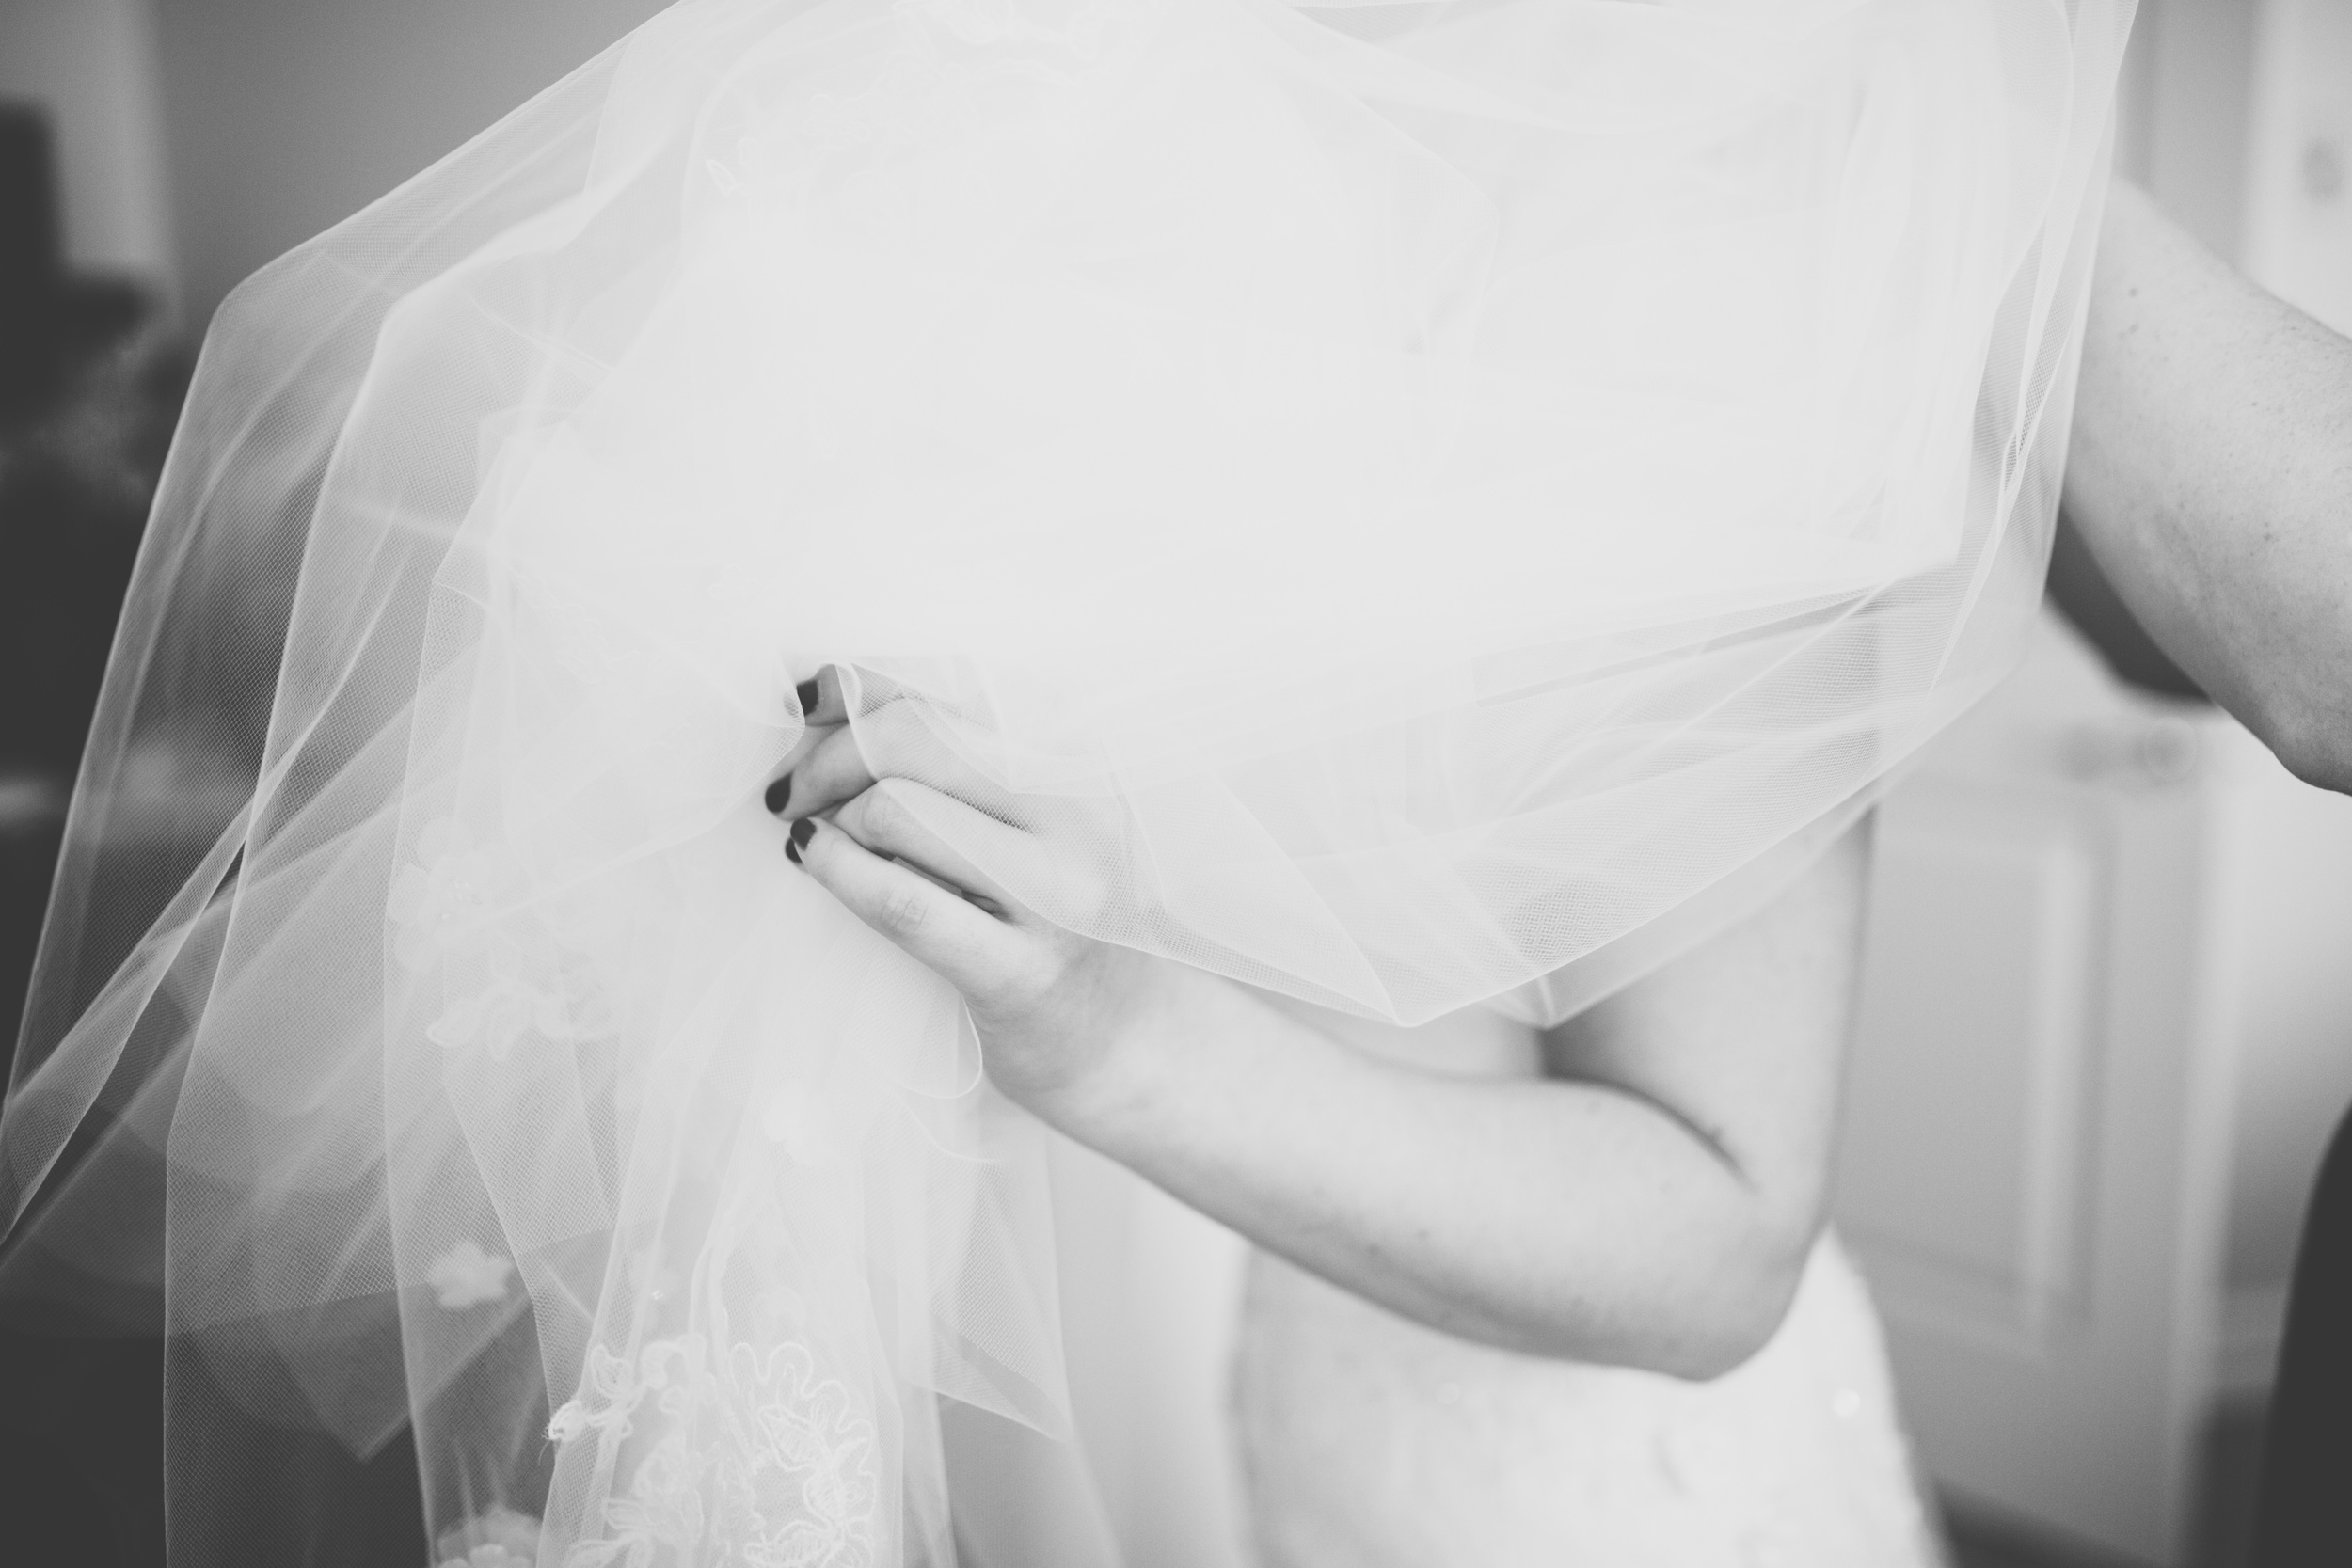 Gnyra_Wedding-55.jpg